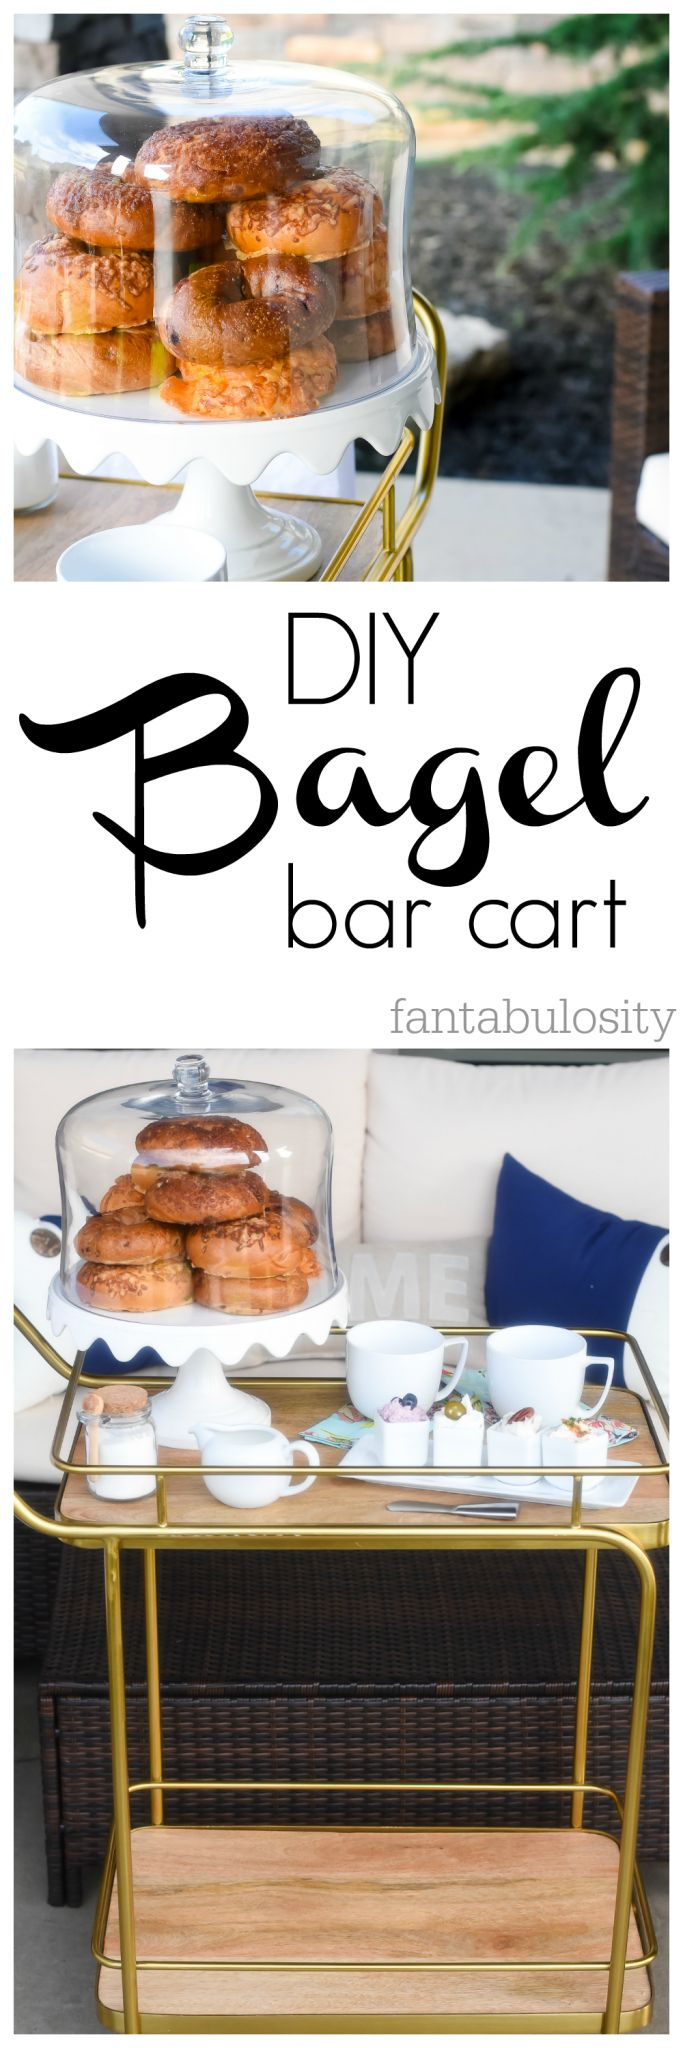 DIY Bagel Bar Cart Ideas. This is perfect for when we have houseguests!